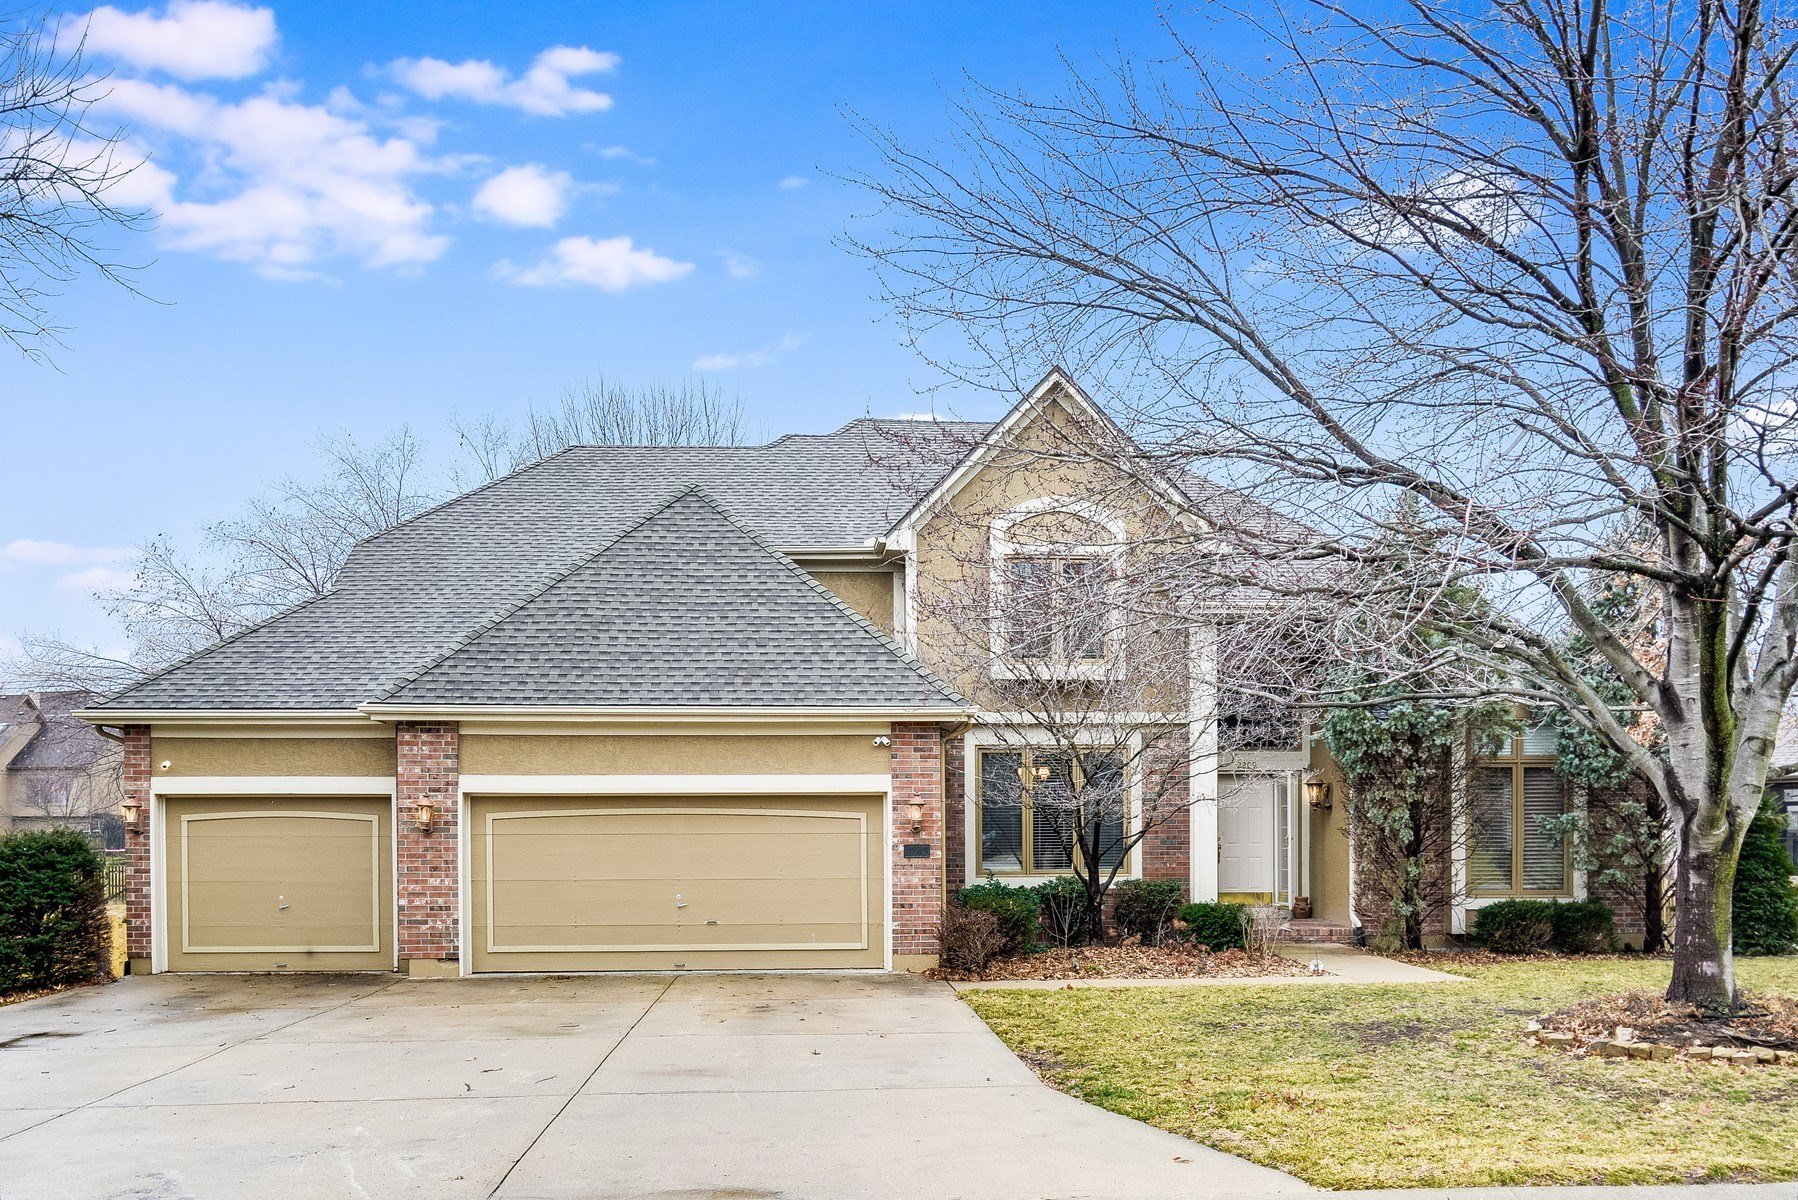 BLUE SPRINGS SCHOOLS, LARGE FAMILY HOME, MAIN FLOOR LIVING